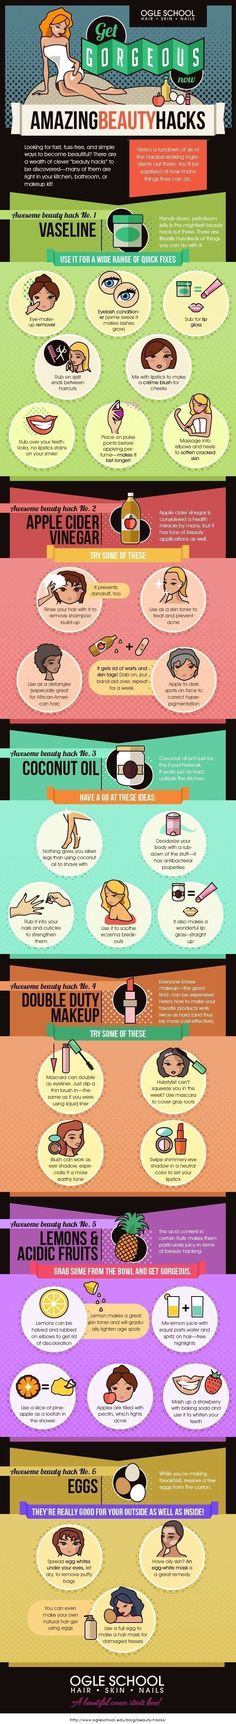 diy beauty hacks. DIY Tips, Tricks, And Beauty Hacks Every Girl Should Know.  For Teens with Acne, To Makeup For Natural Looks Or Shaving.  Stuff For Skincare, For Hair, For Overnight Treatment, For Eyelashes, Nails, Eyebrows, Teeth, Blackheads, For Skin, and For Lazy Ladies Looking For Amazing and Cheap, Step By Step Looks. Tap the link now to find the hottest products for Better Beauty!